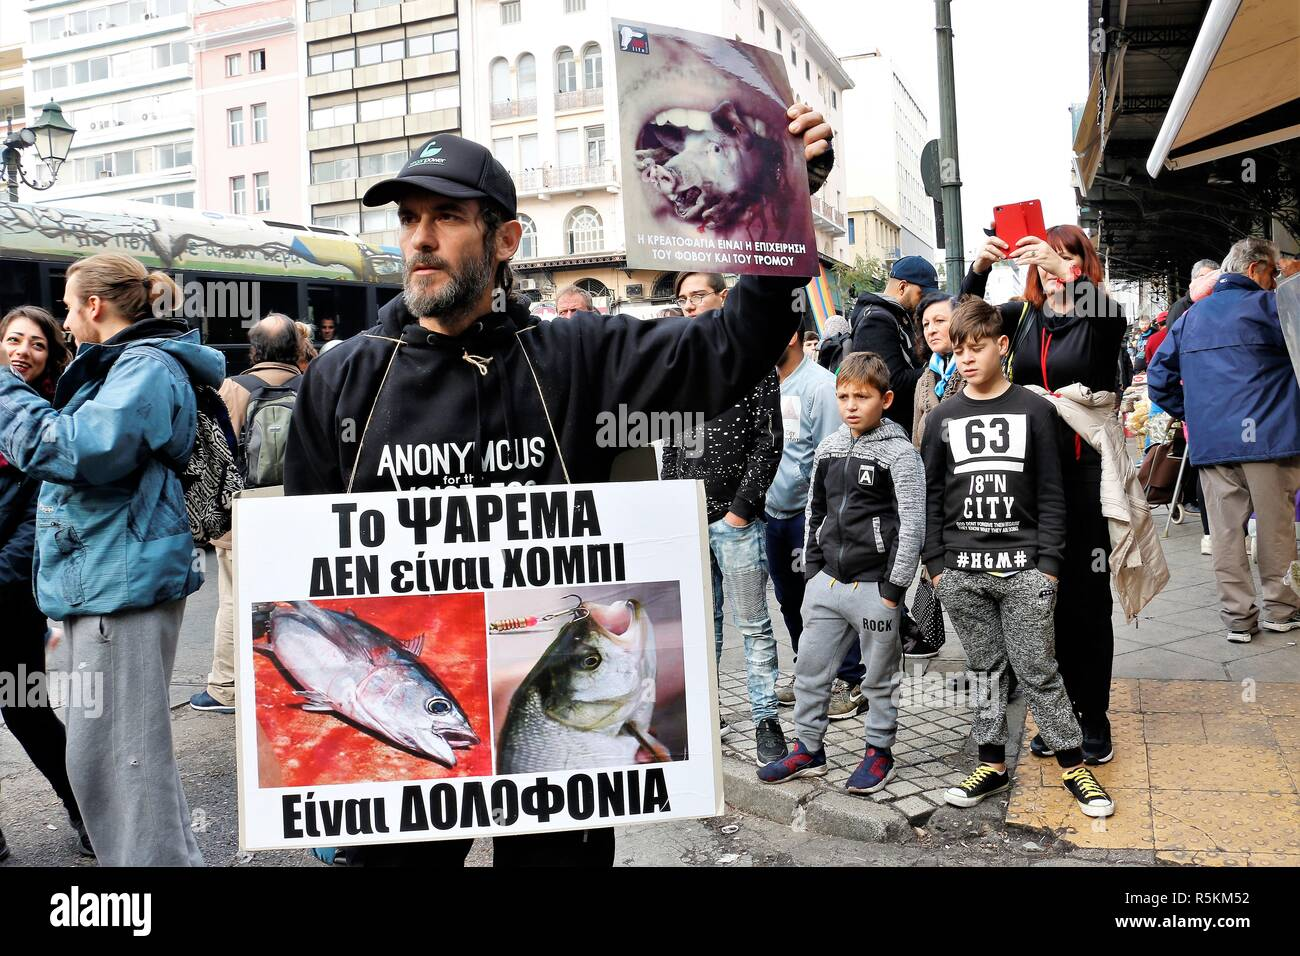 A protester seen holding placards during the protest. Animal right activists demonstrate in Athens against animals' abuse, violence, mistreatment towards animals and promoting a vegan way of life. - Stock Image